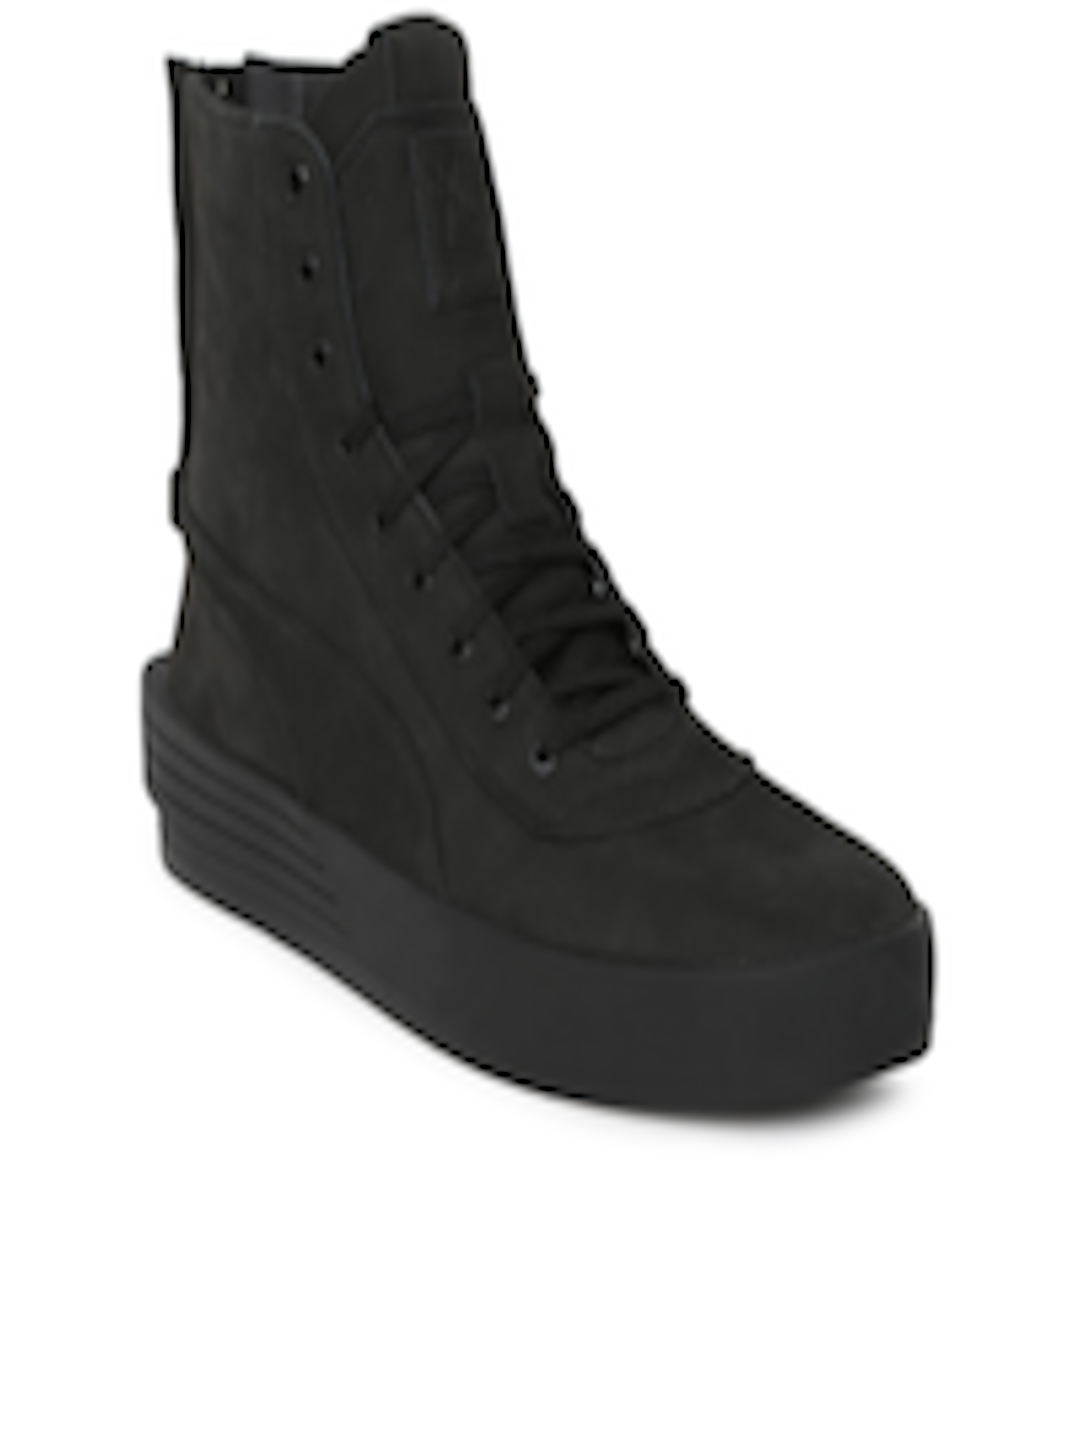 eb63b23b114 Buy Puma Unisex Black PUMA XO PARALLEL Leather High Top Sneakers - Casual  Shoes for Unisex 6697461